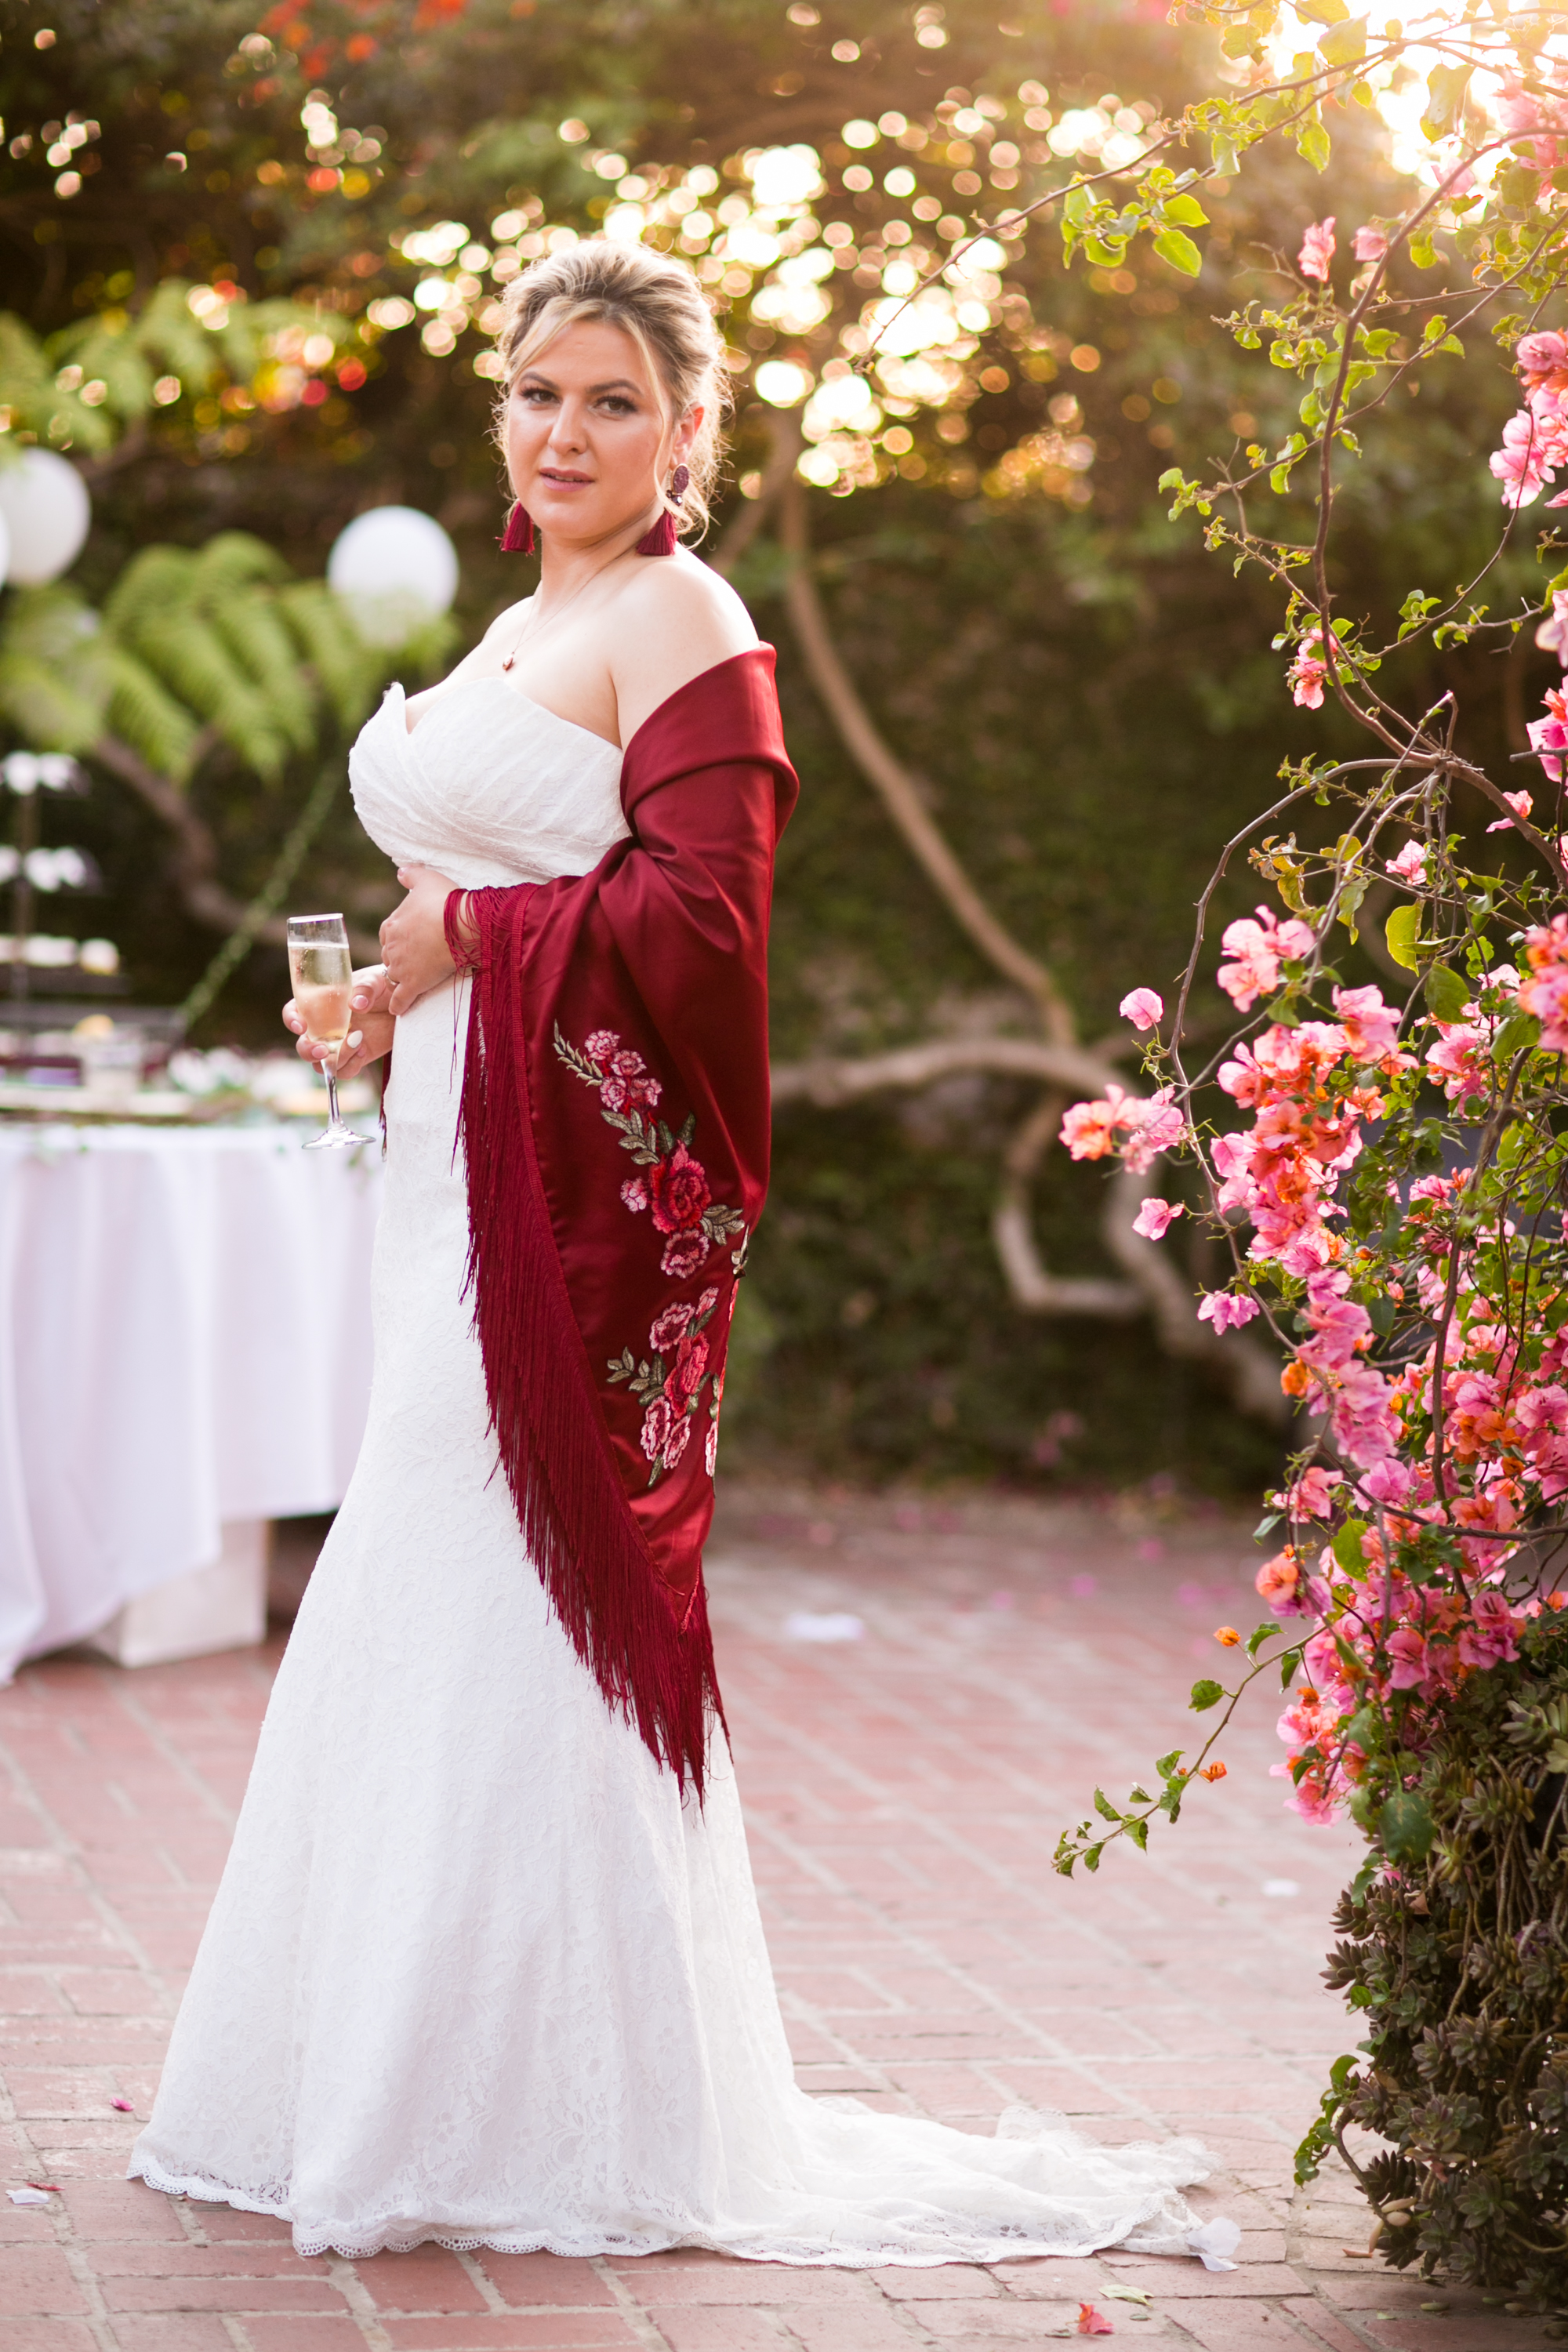 20-2019-May-wedding-ana-web.jpg